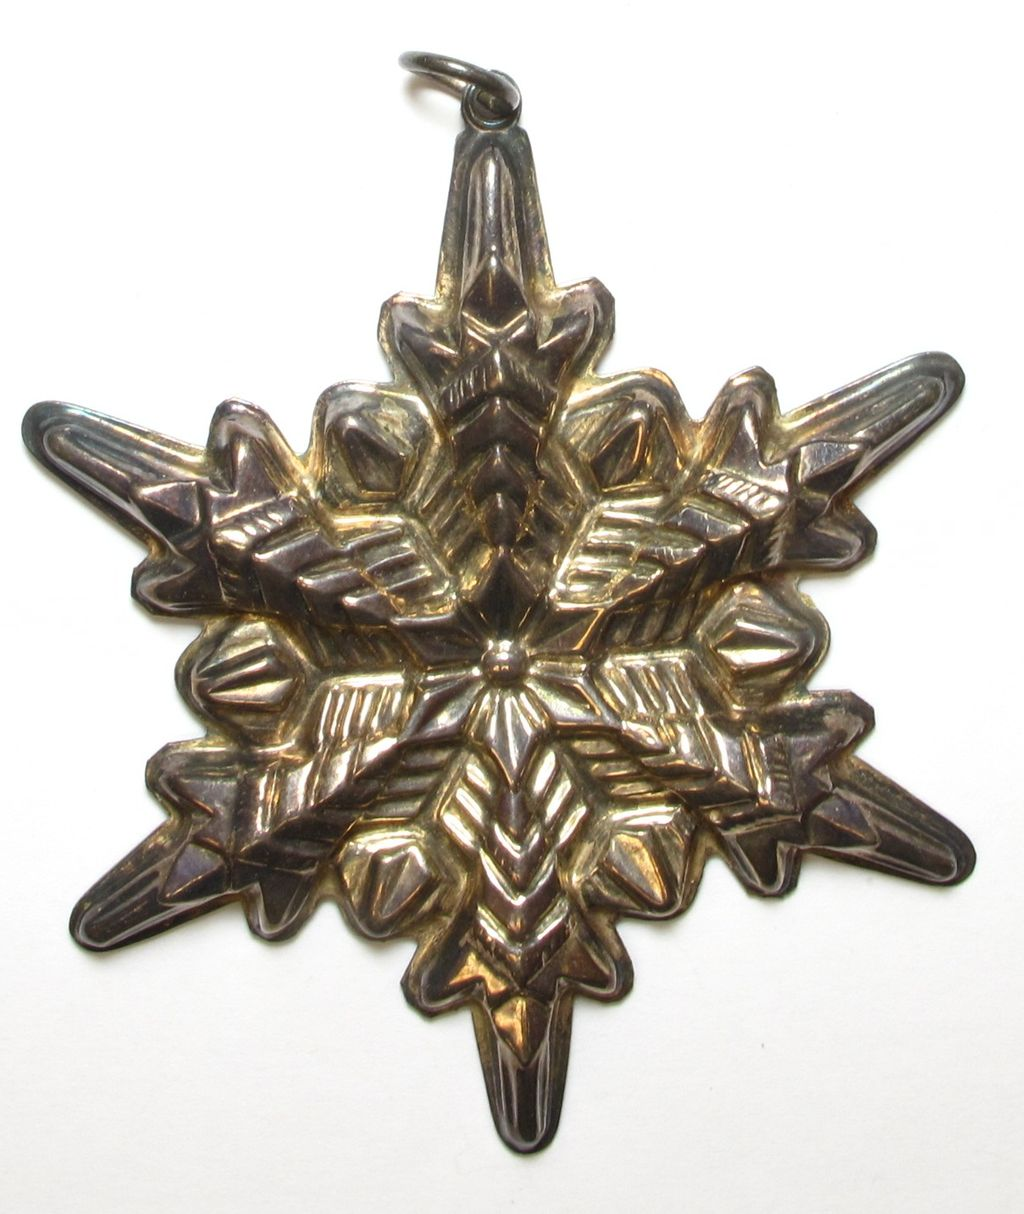 sold by phone Vintage Sterling Silver Gorham Snowflake Pendant / Ornament.